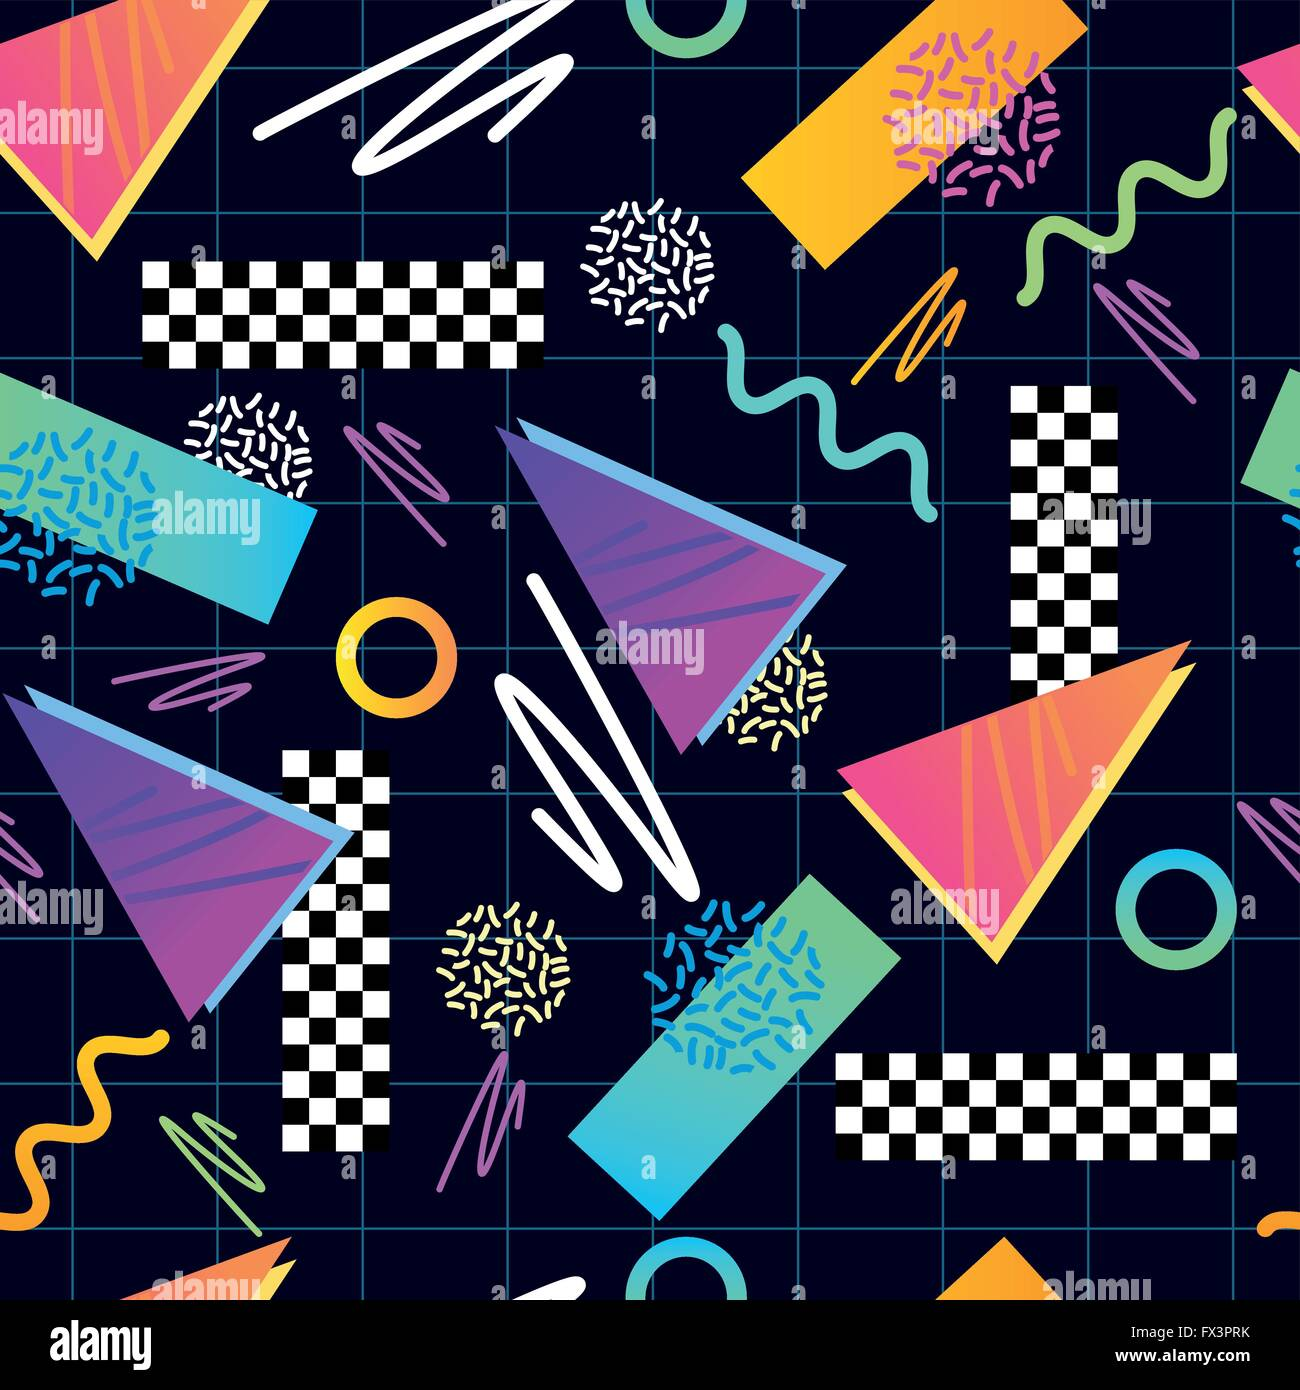 Eighties Seamless Pattern Vector. Classic 1980s seamless grid pattern. Vector illustration. - Stock Image